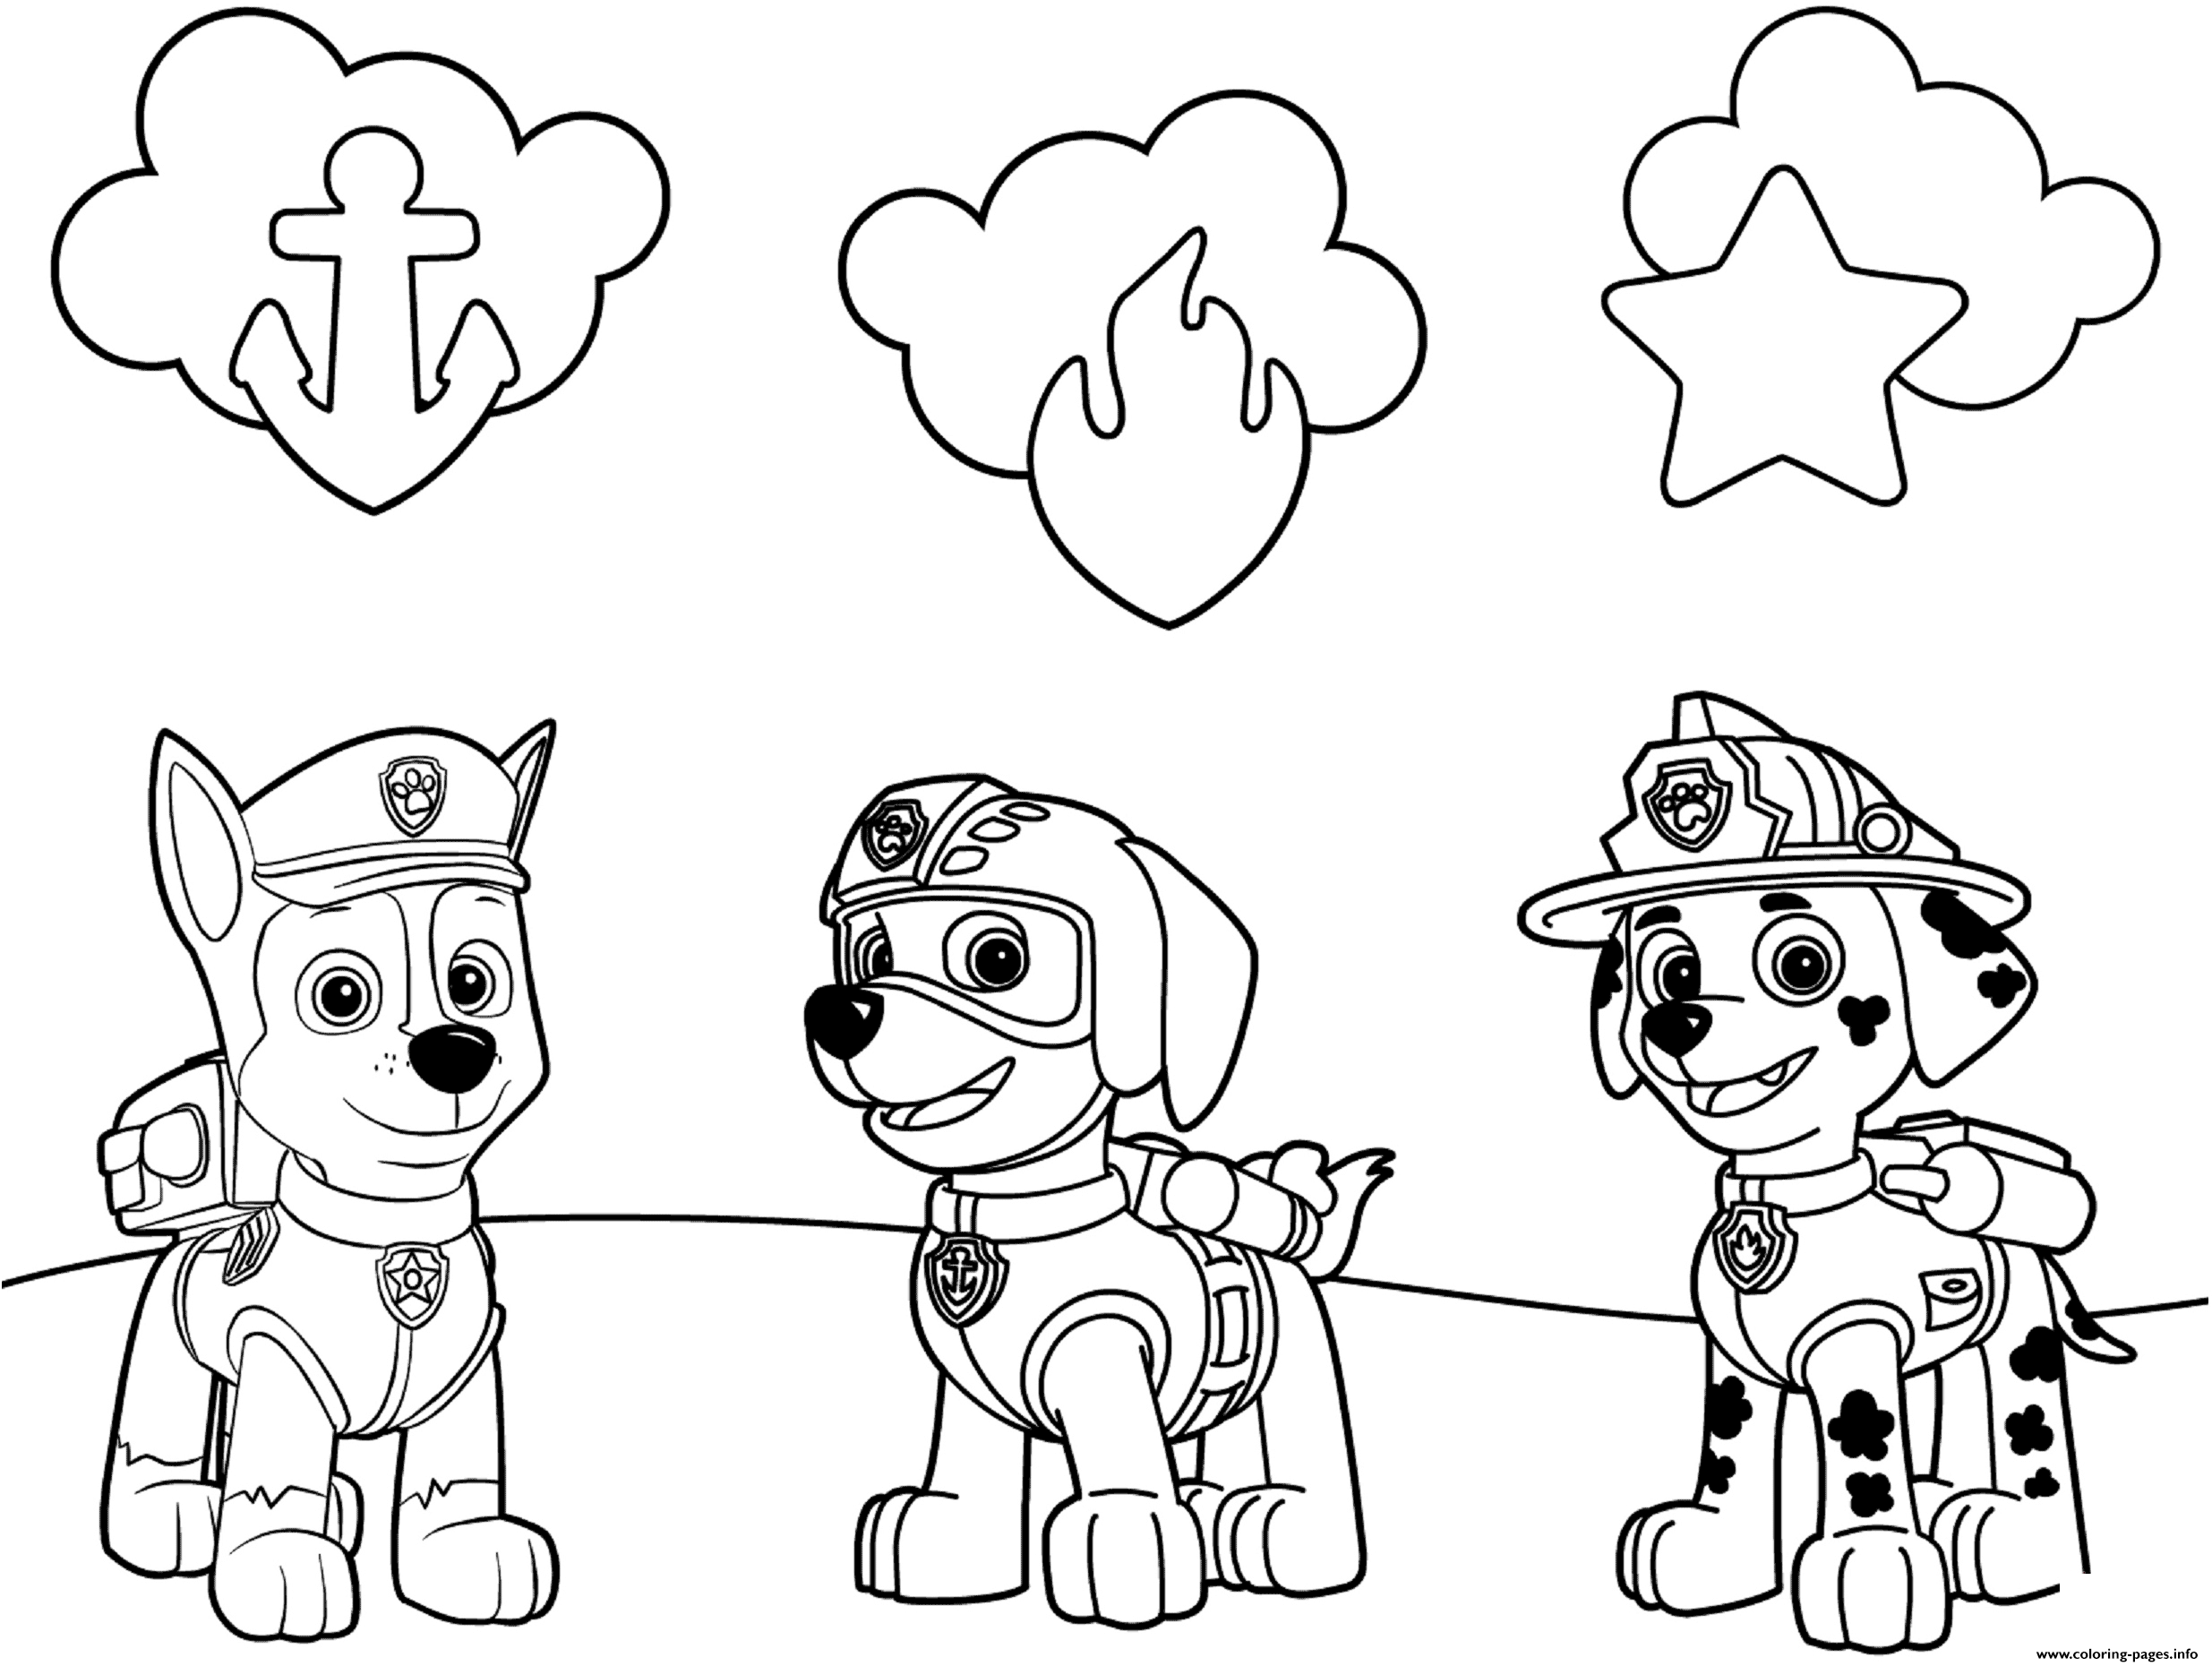 Free Printable PAW Patrol Coloring Pages are fun for kids